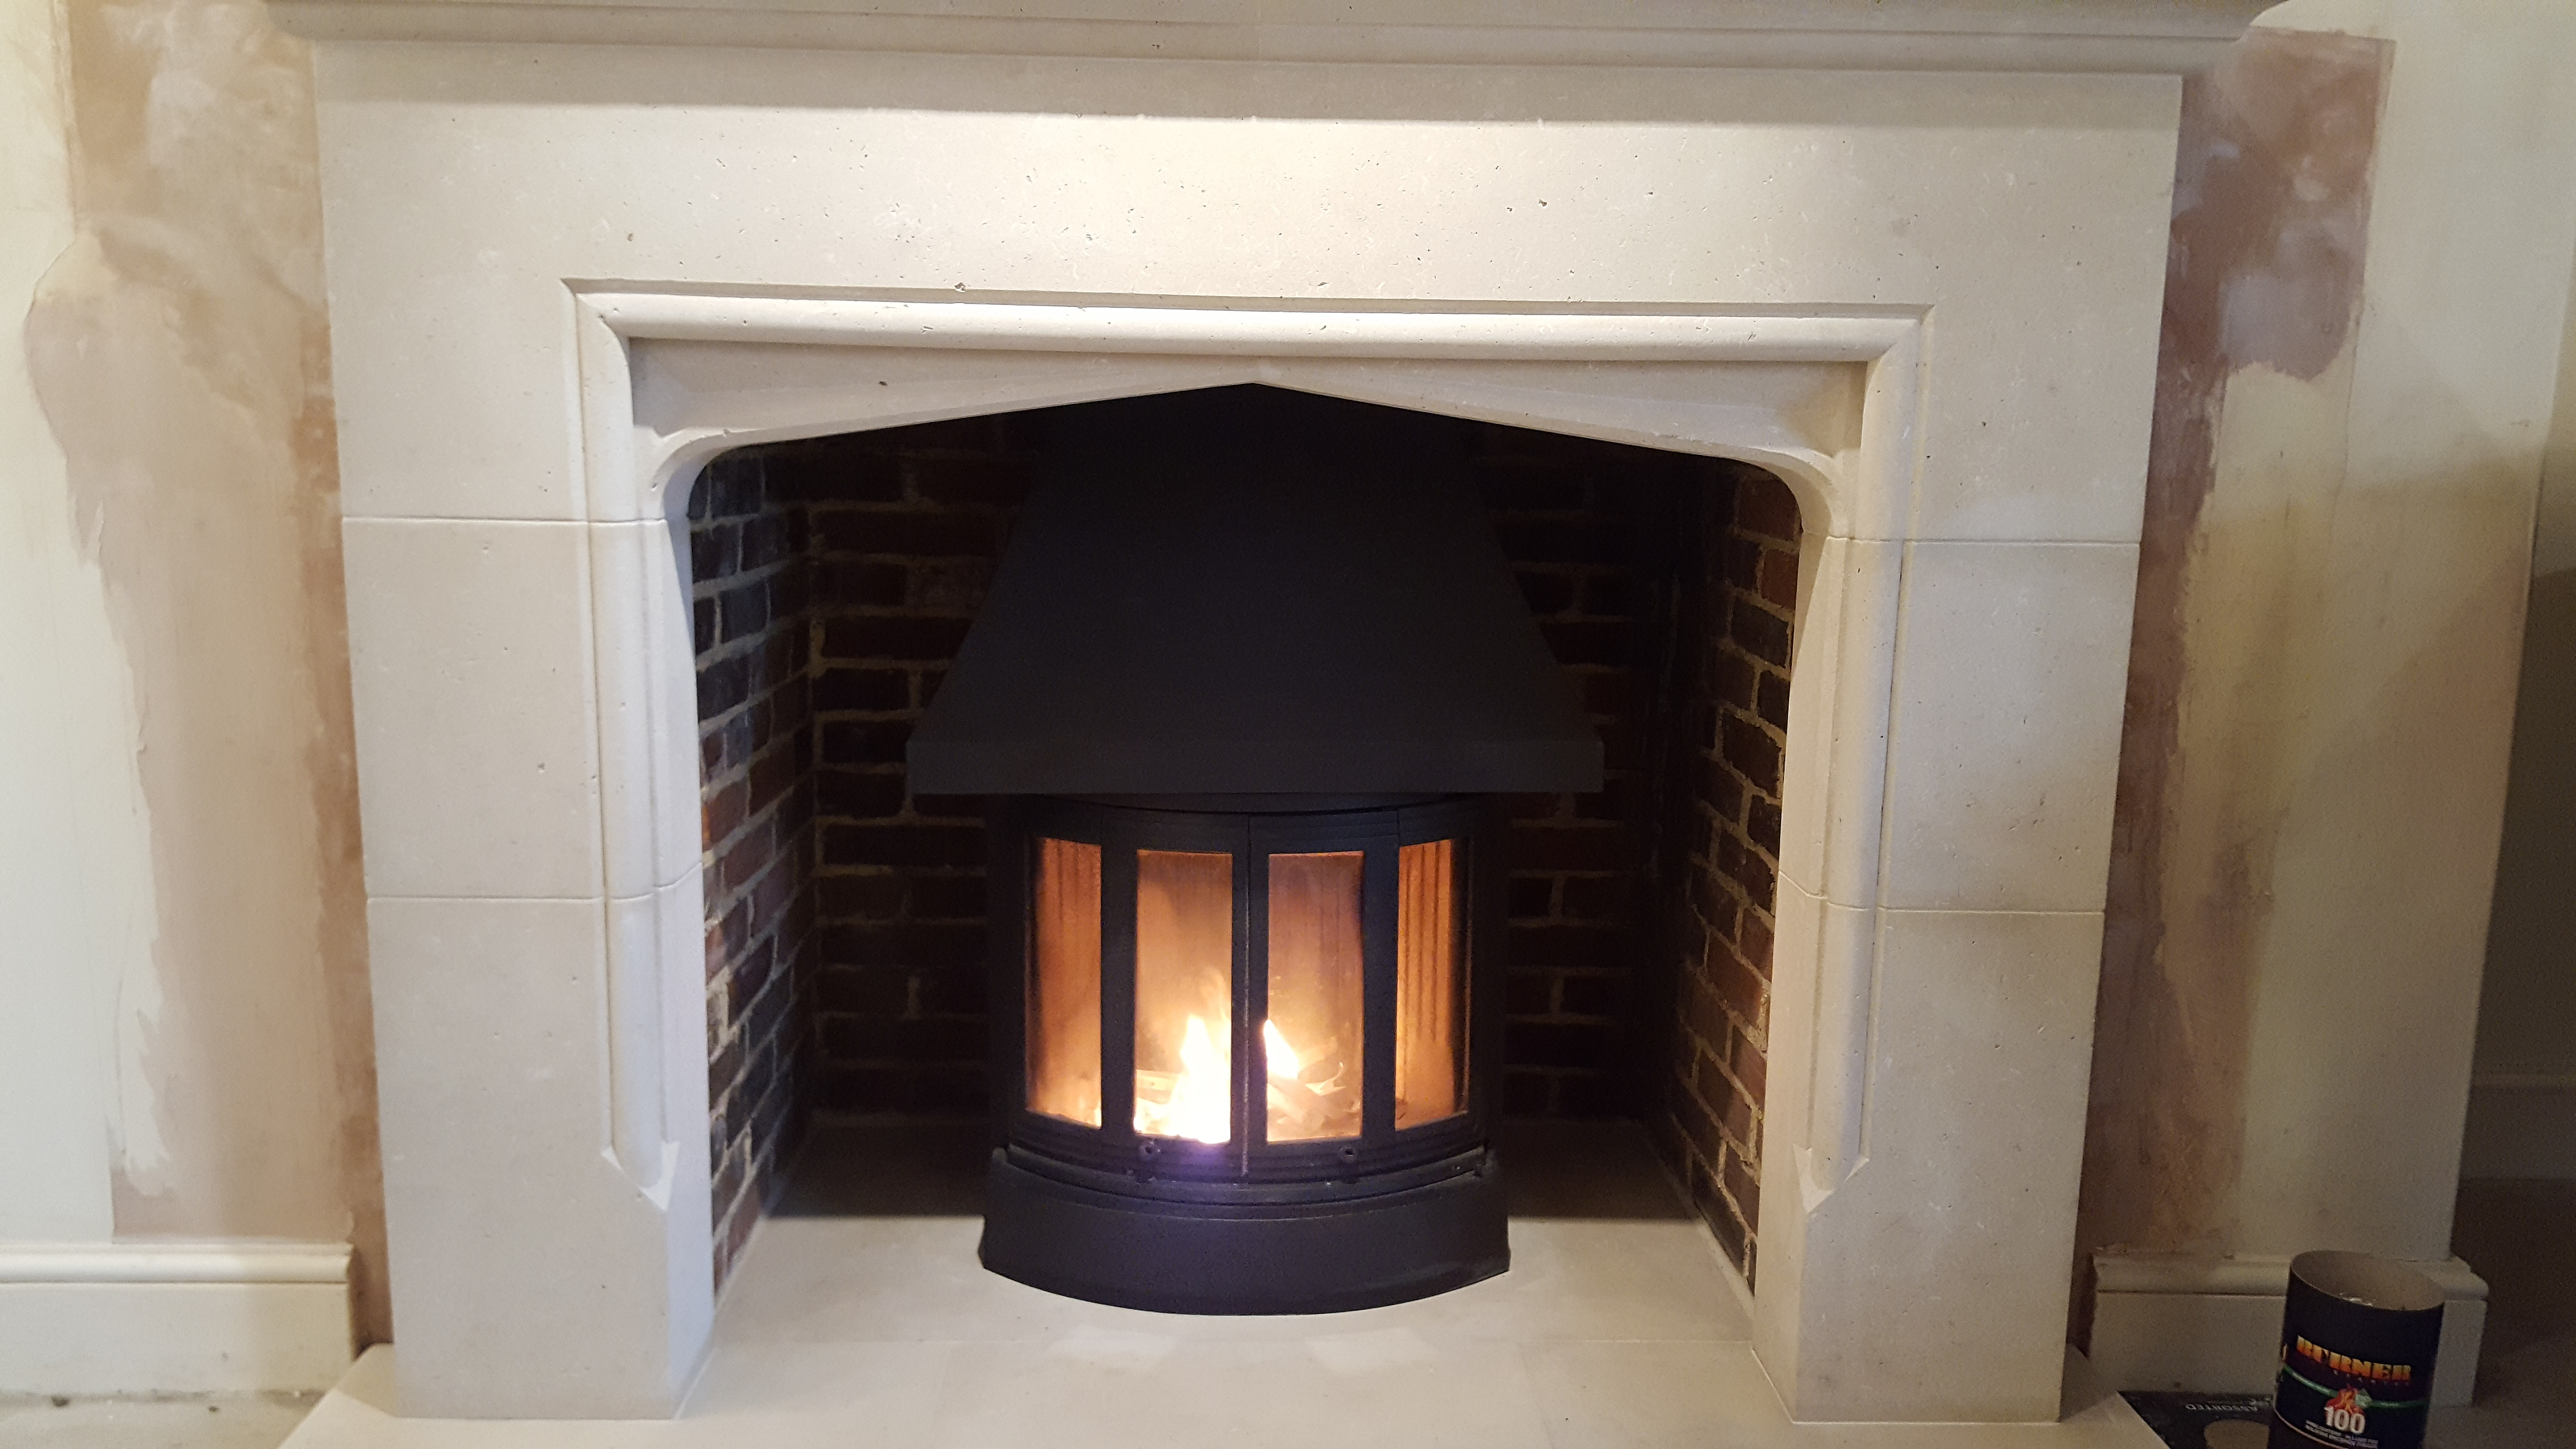 Jotul wood burning stove with limestone fireplace surround